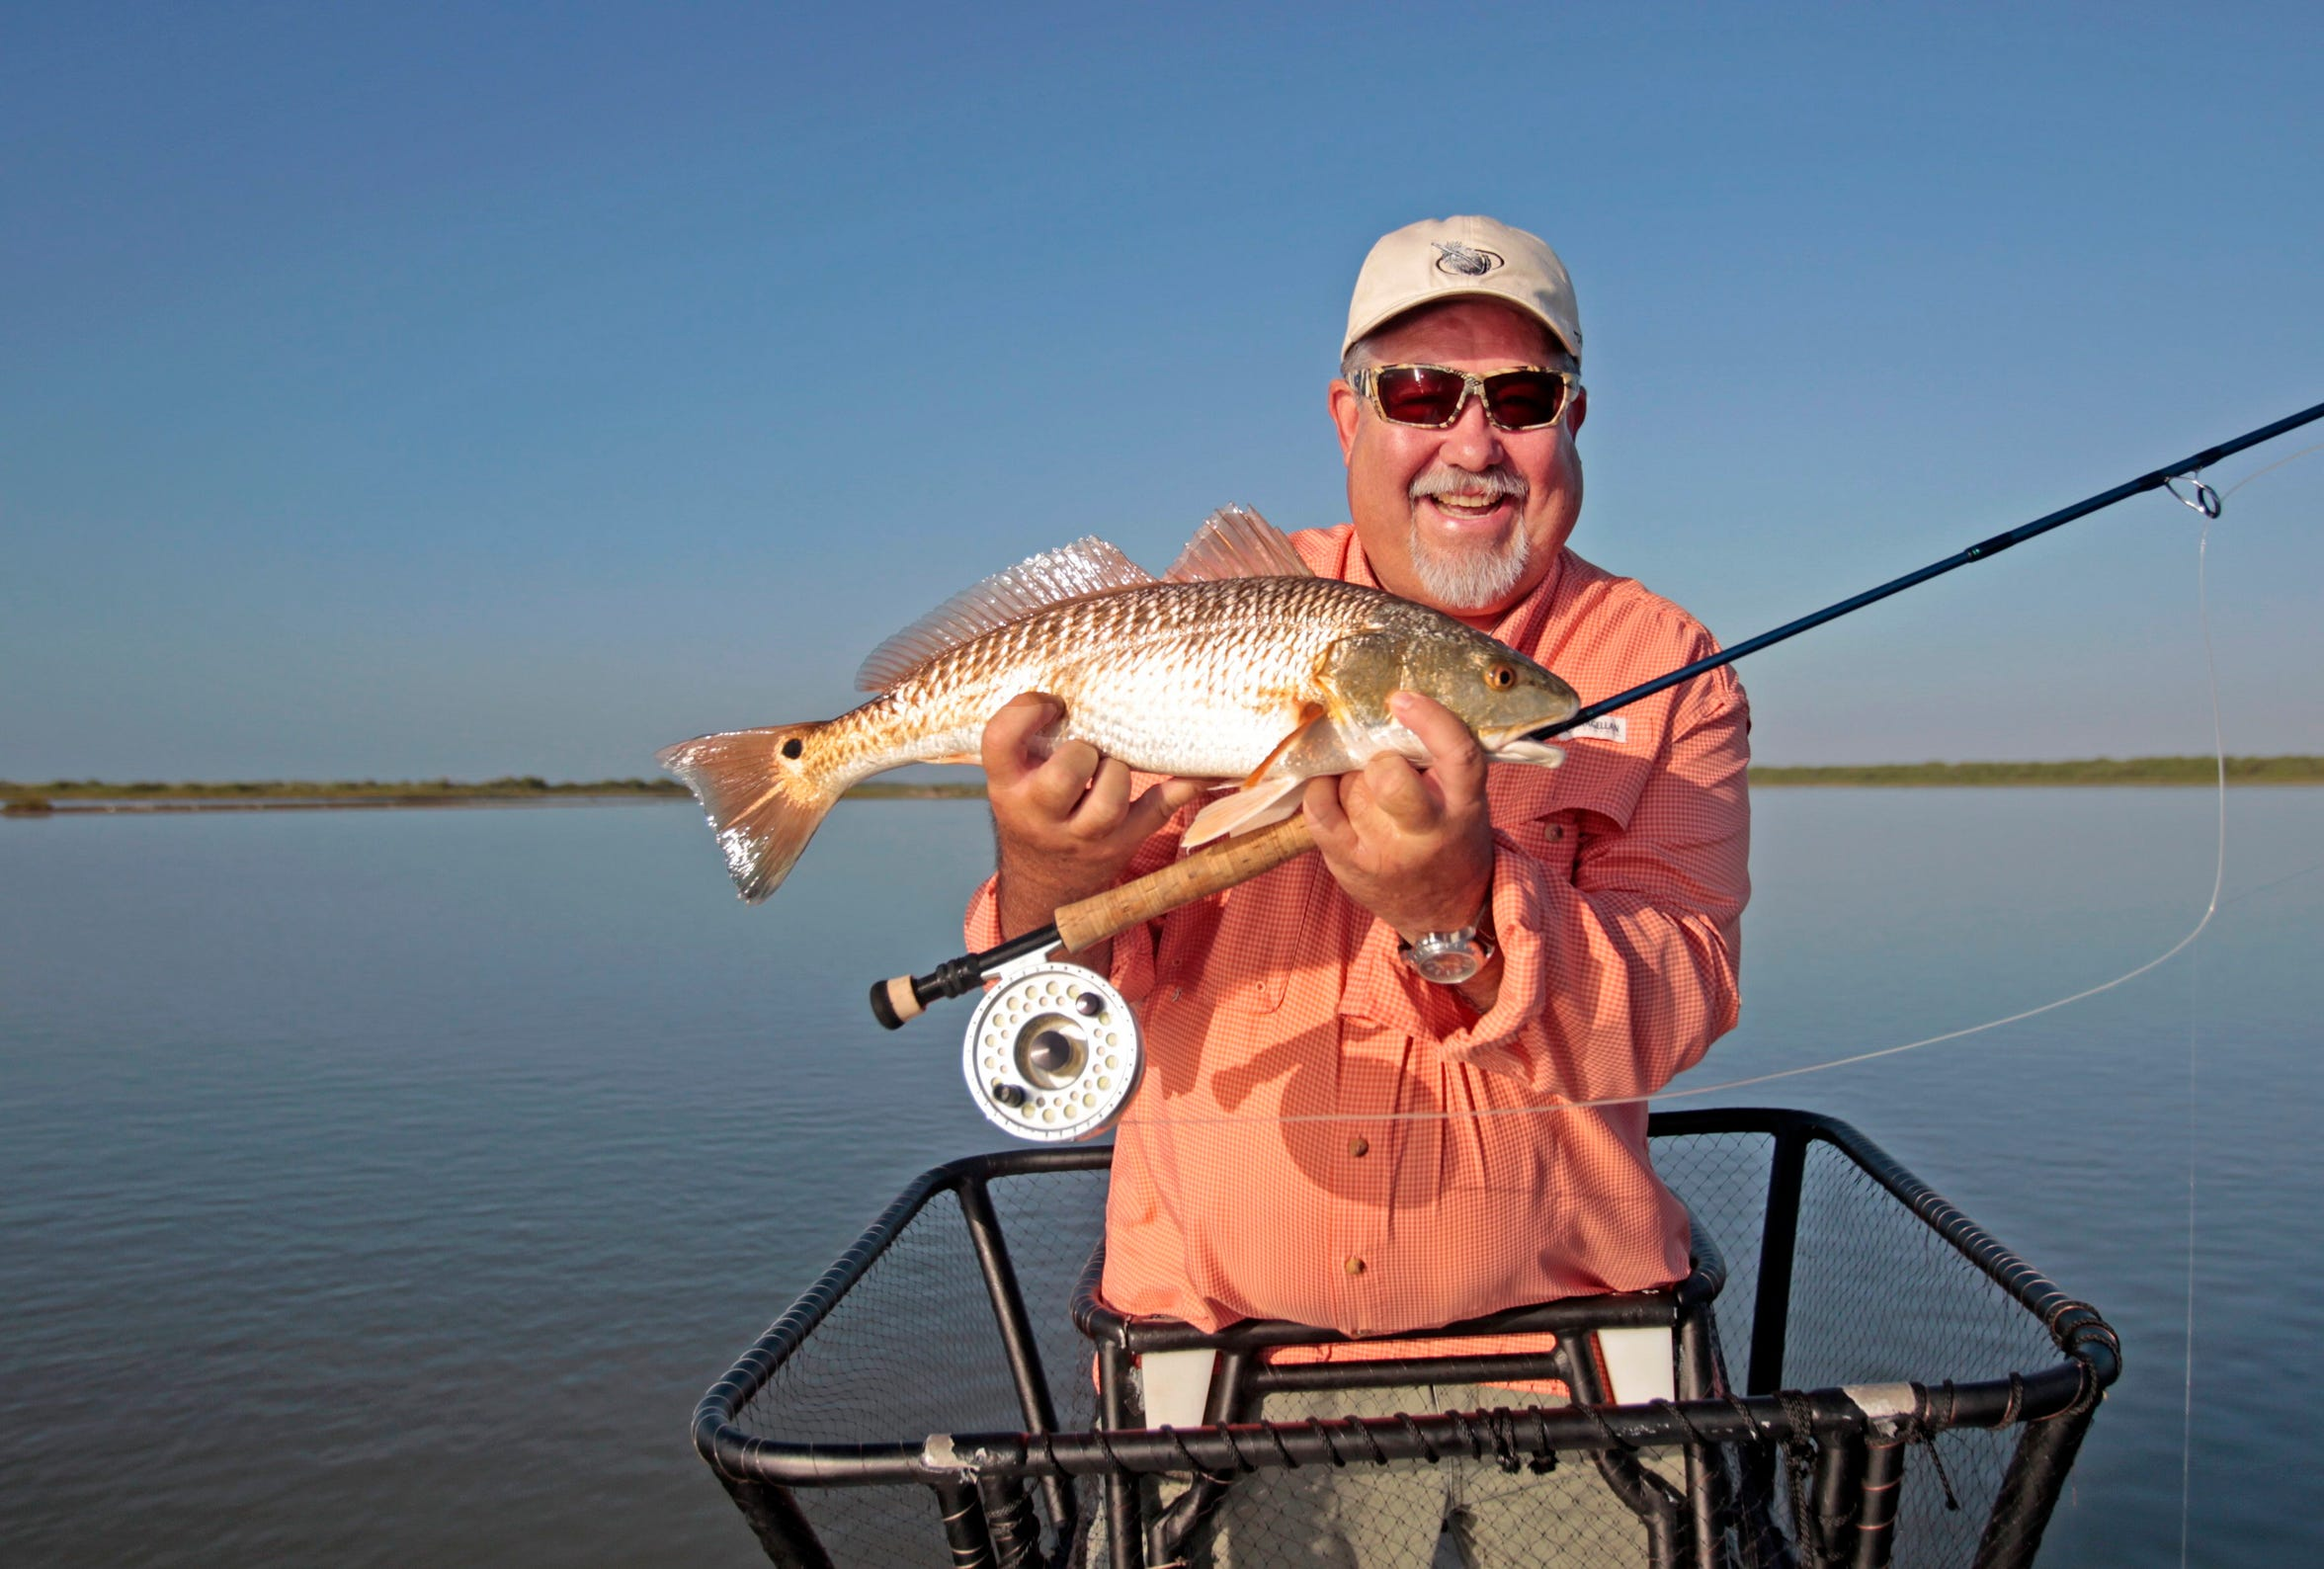 Fly fishing near Rockport with Chuck Naiser.